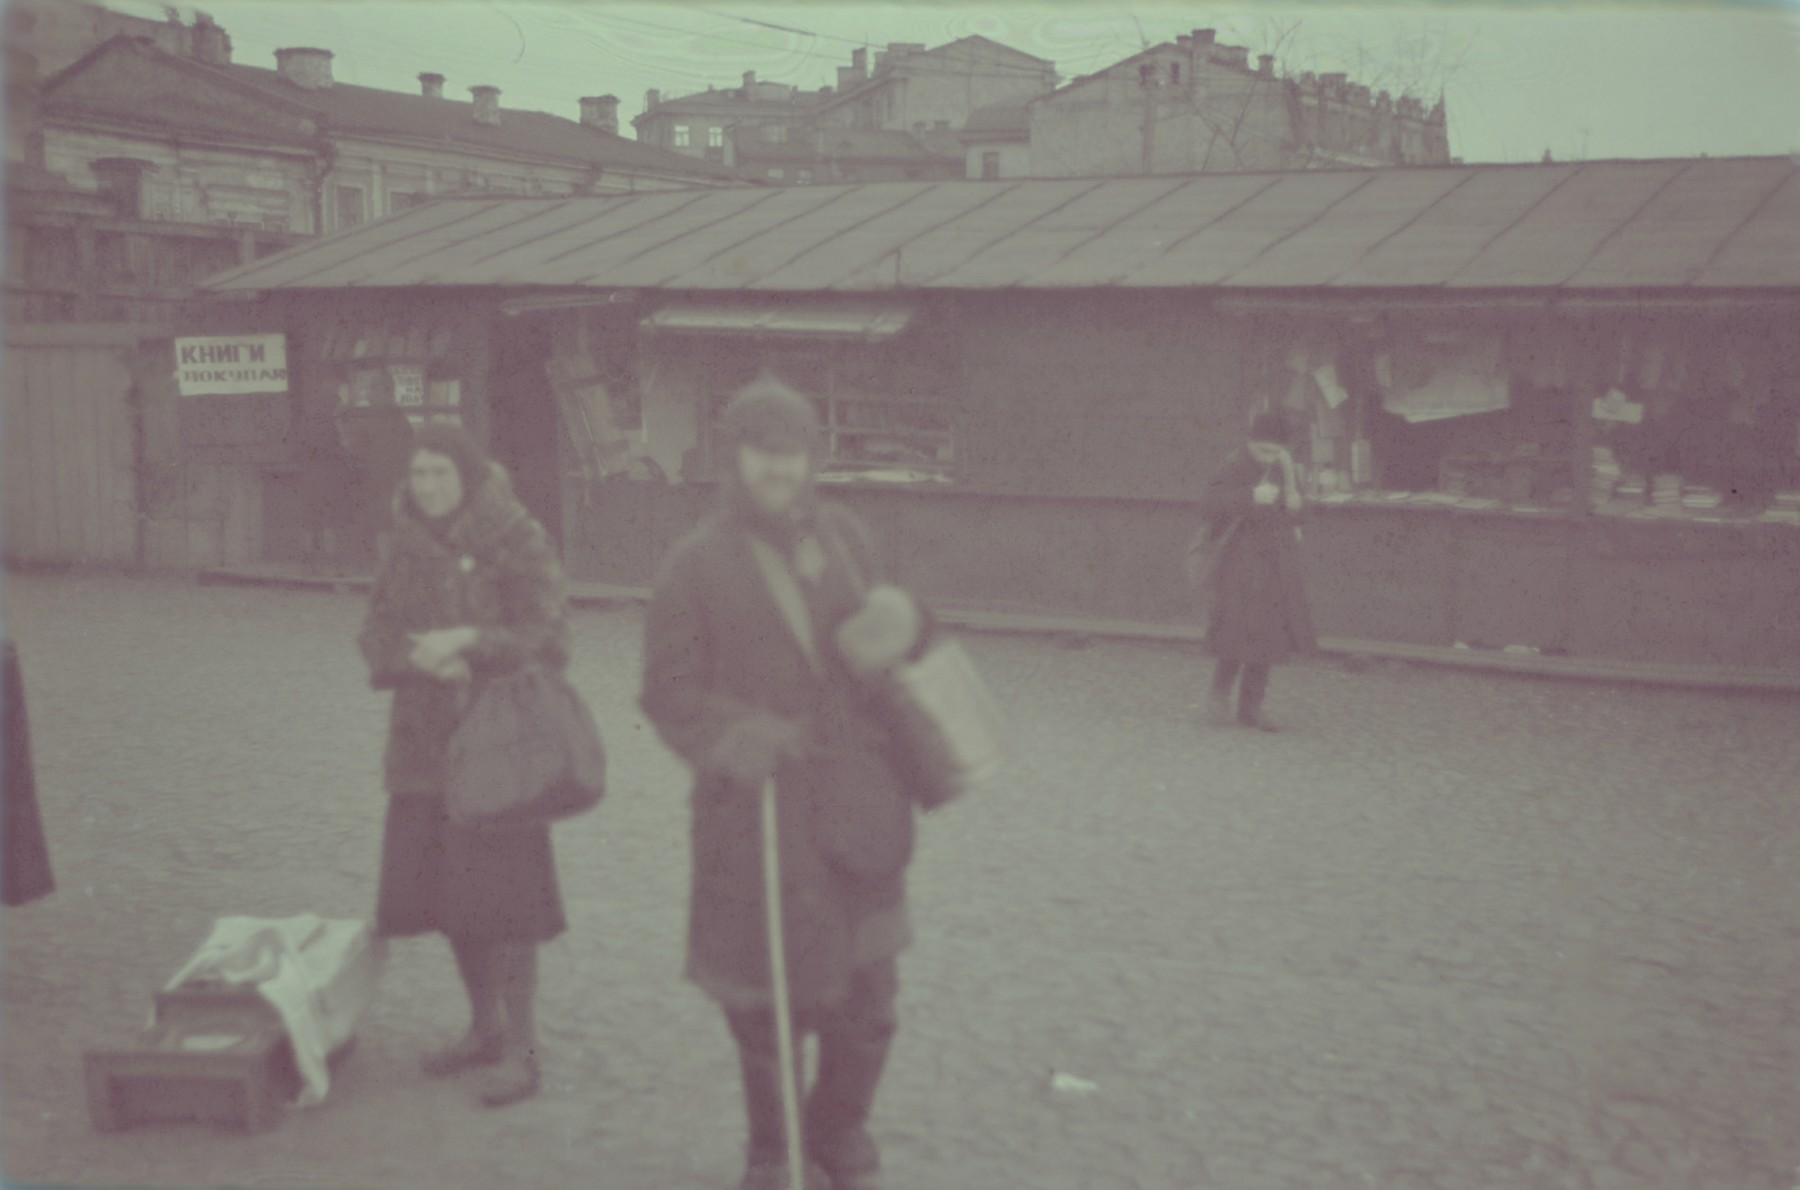 A street scene in the Lodz ghetto.